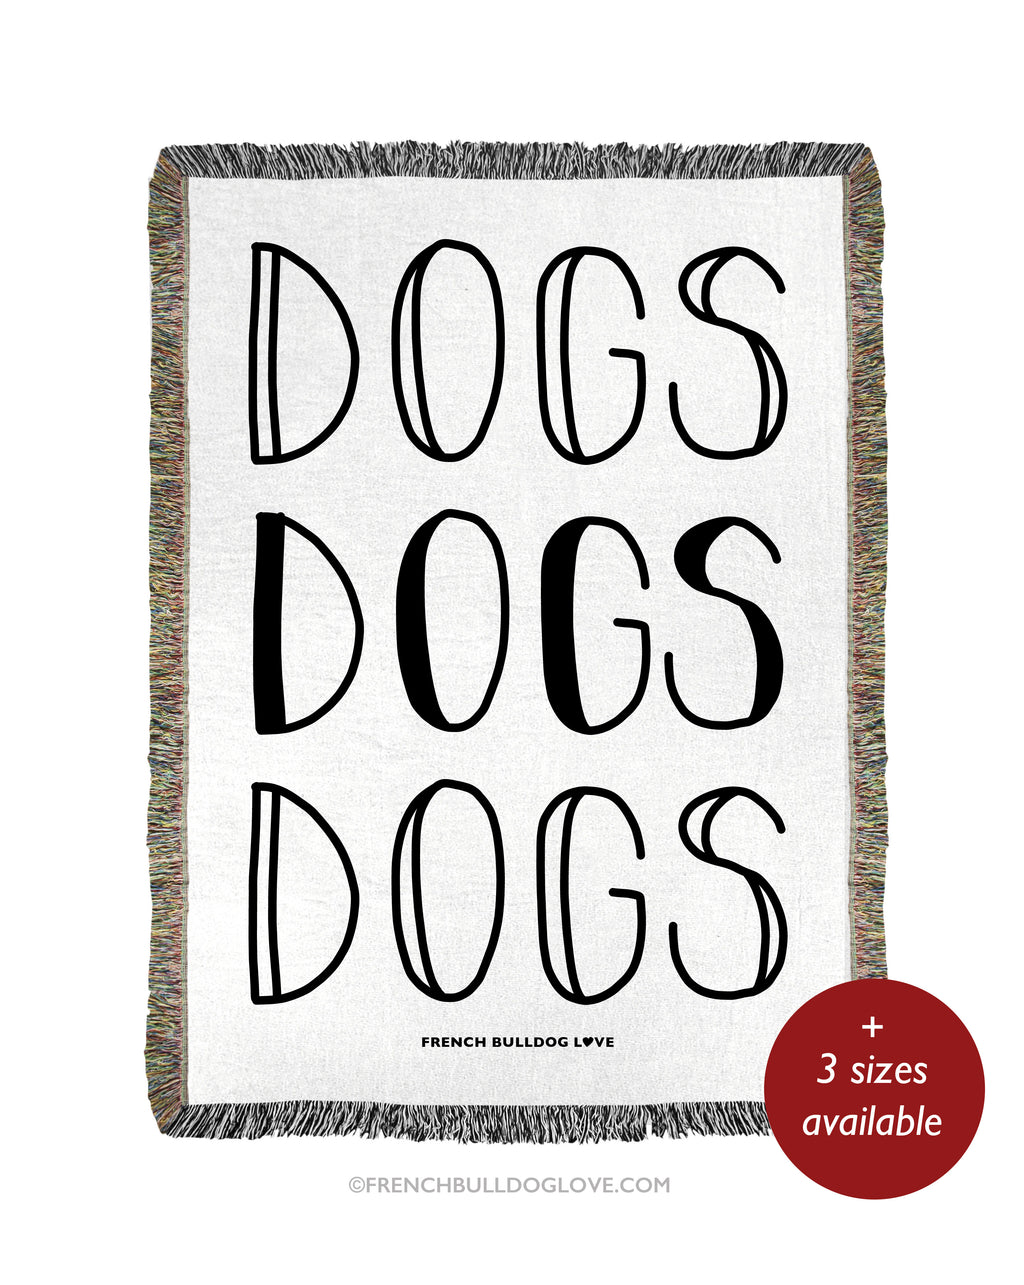 DOGS Woven Blanket - Natural - 100% Cotton